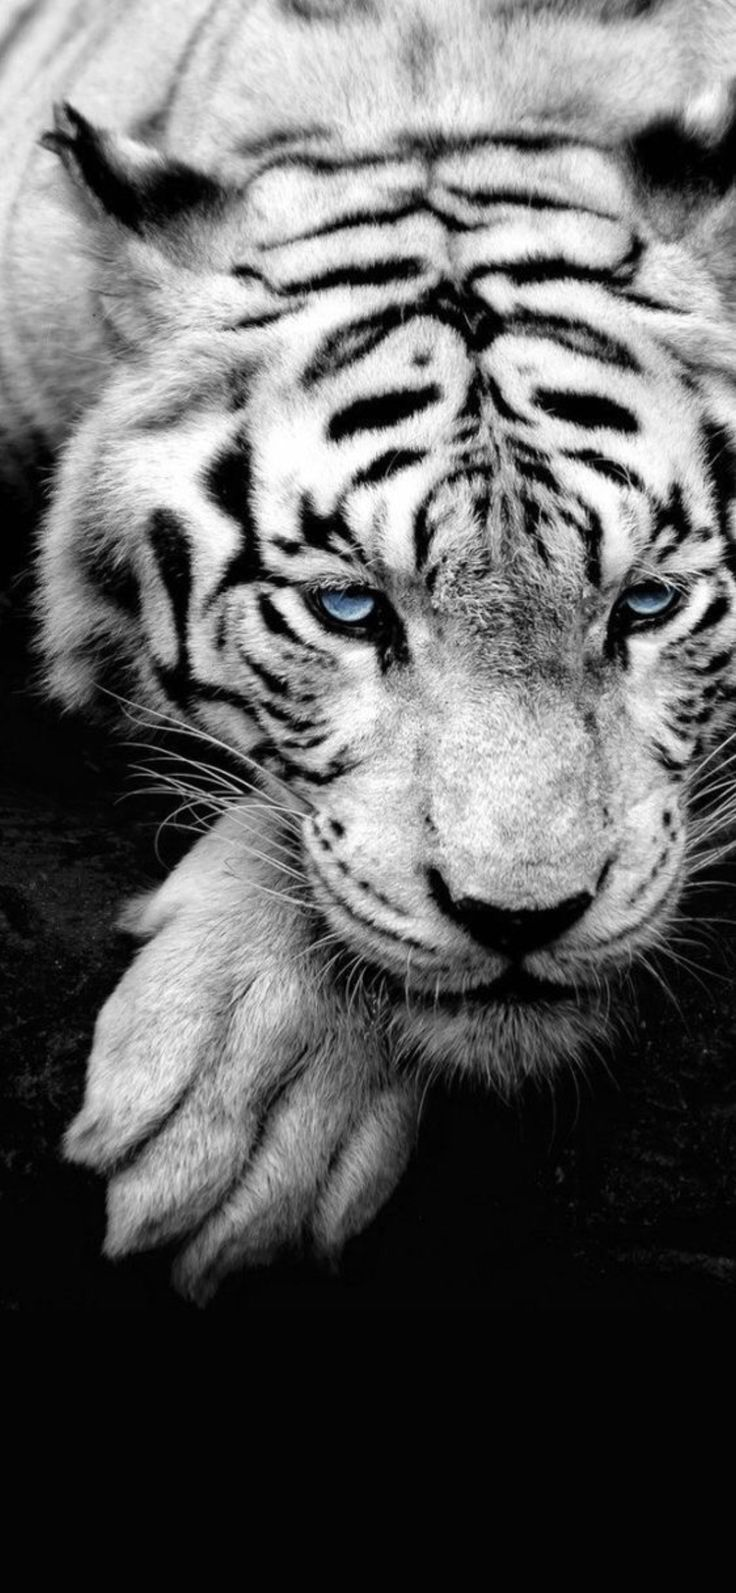 wallpaper iphone x Pet tiger, Tiger wallpaper, Wild